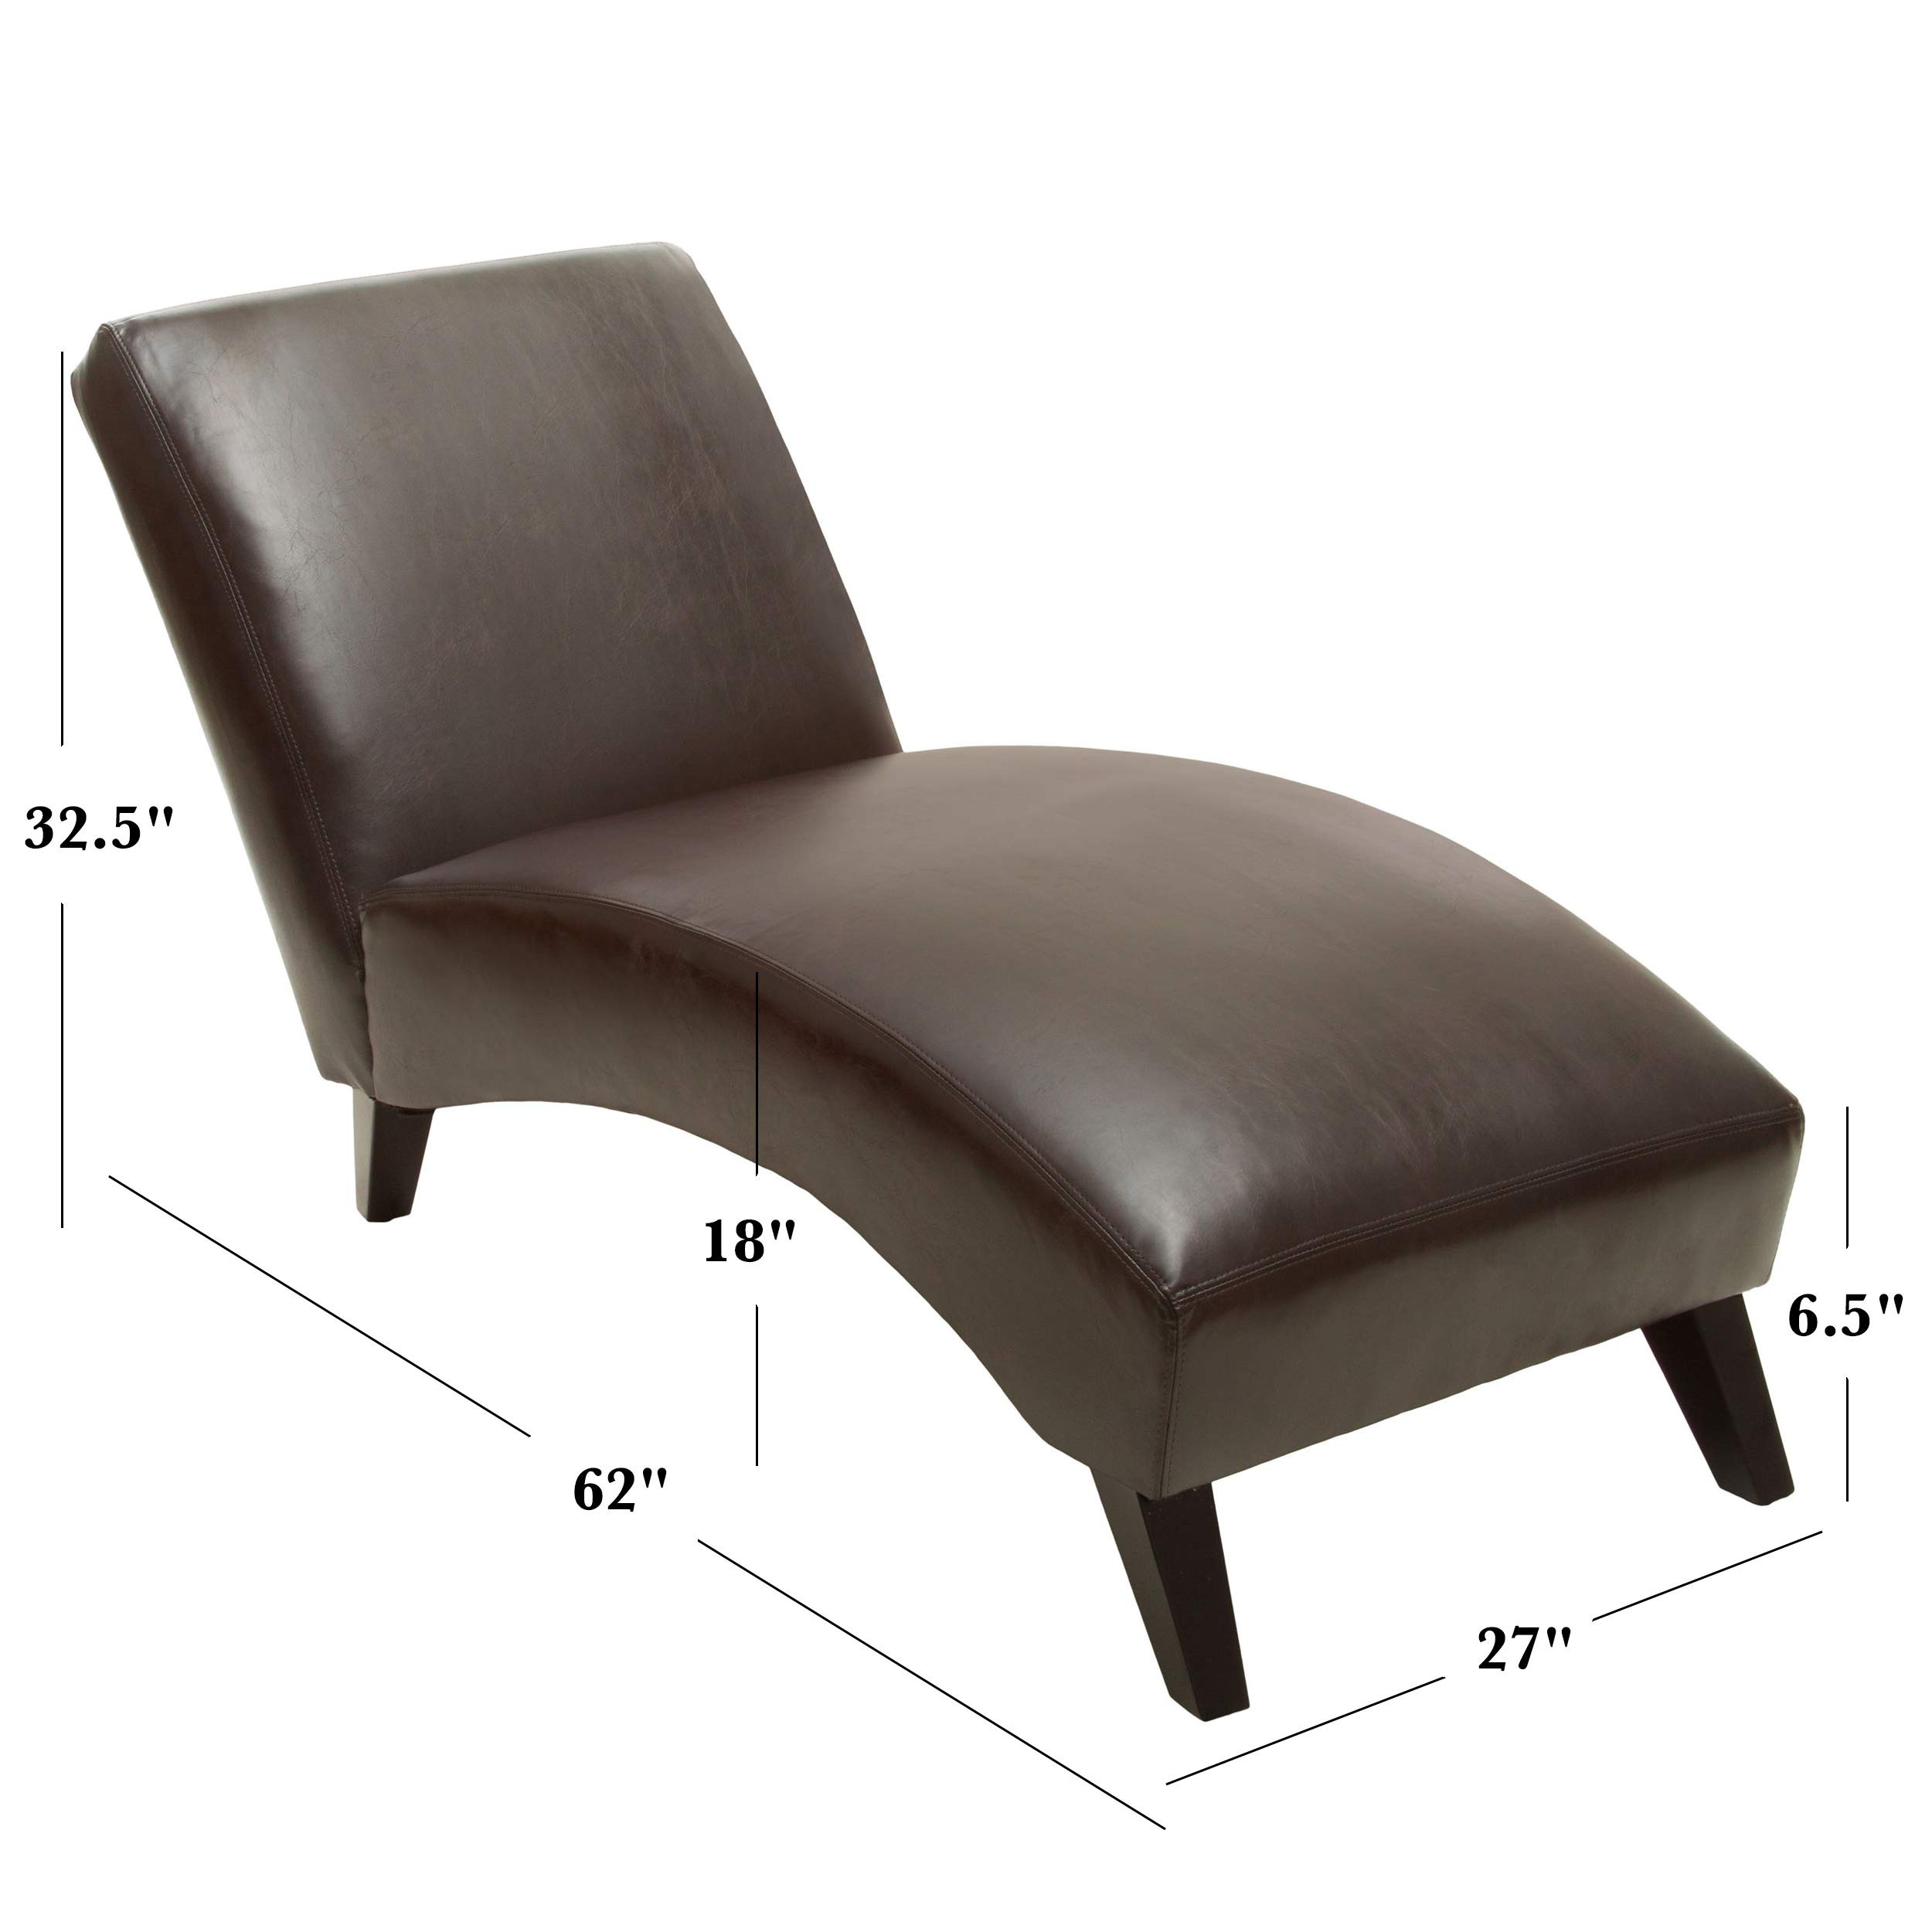 Christopher Knight Home Cleveland Brown Leather Curved Chaise Lounge Chair by Christopher Knight Home